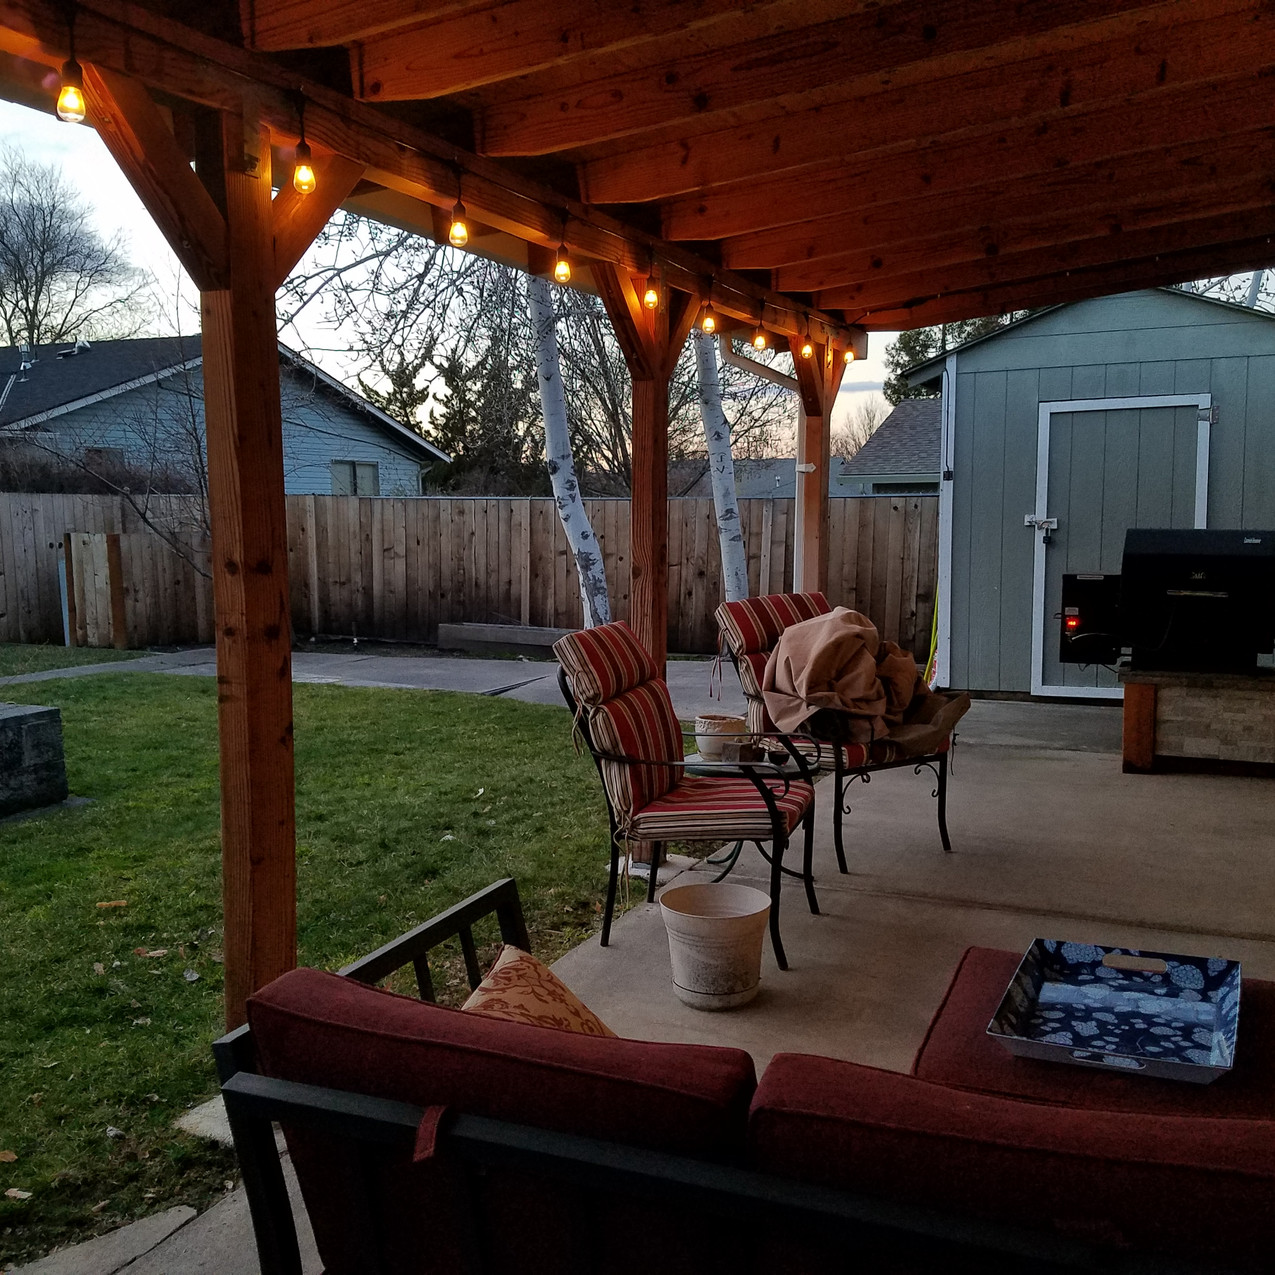 What a great place for cooking out!